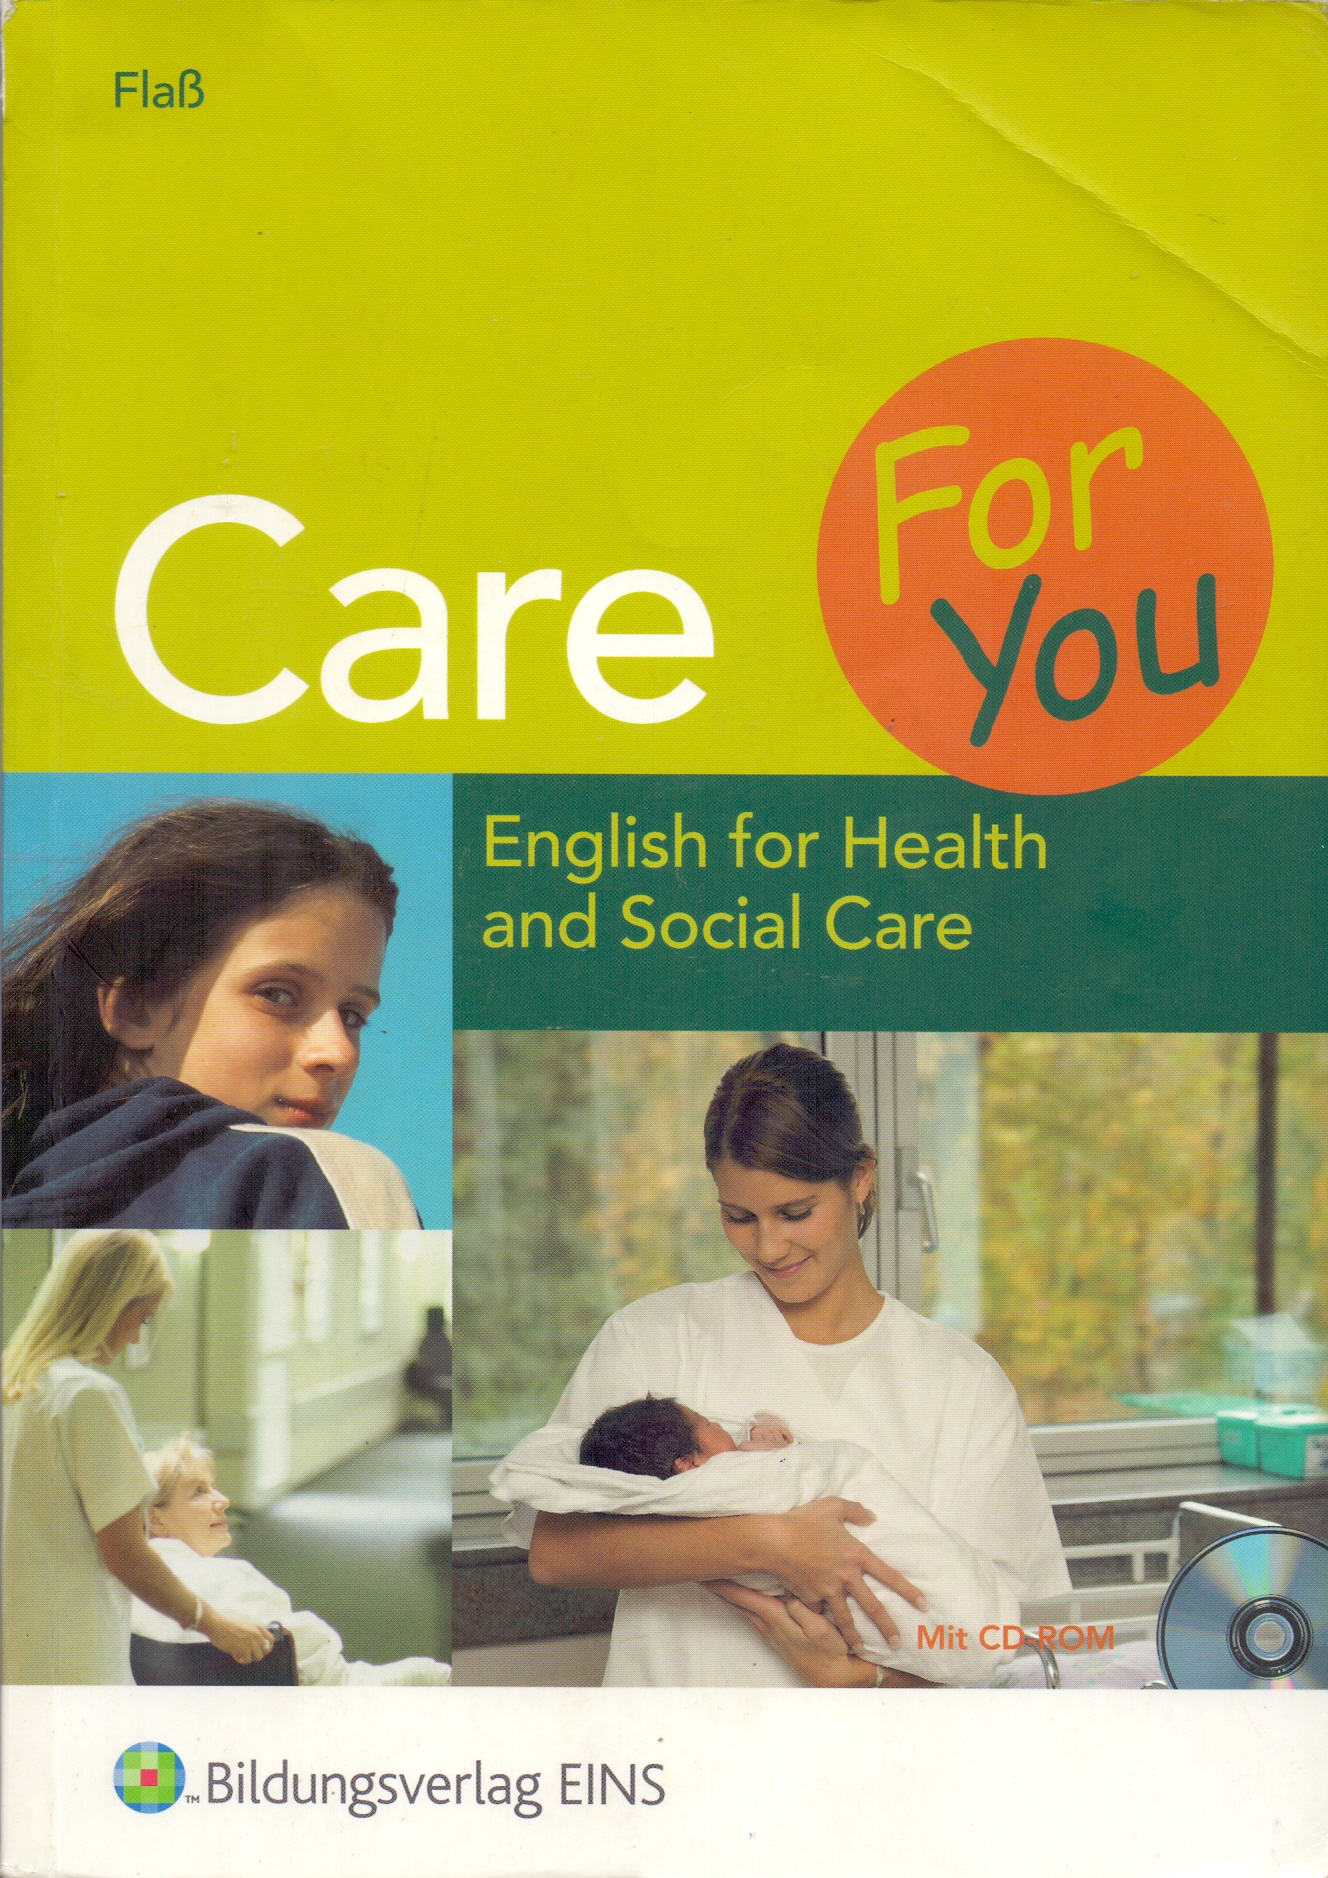 Care for You: Englisch for Health and Social Care - Ruth Flaß [Broschiert, inkl. CD-Rom, 1. Auflage 2006]